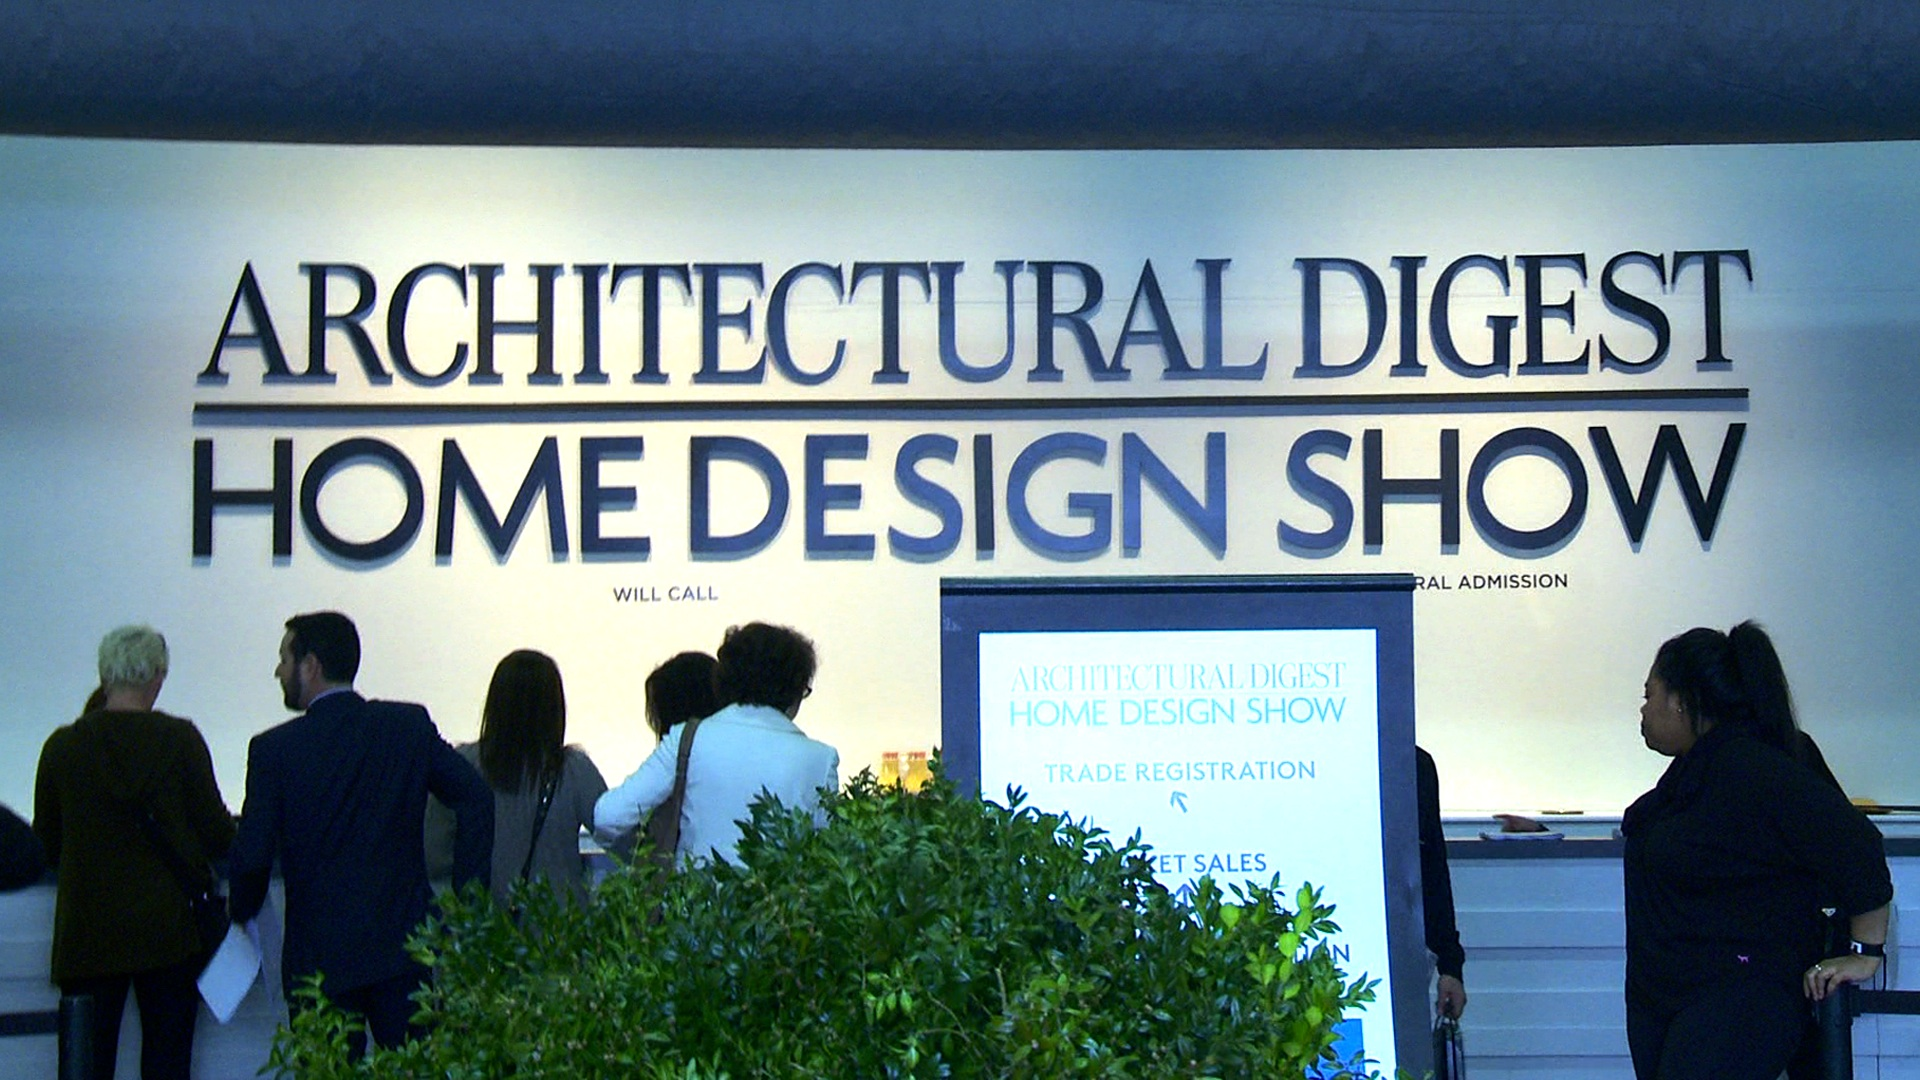 Trends In Furnishings Now Architectural Digest Architectural - Architectural digest modular home designs